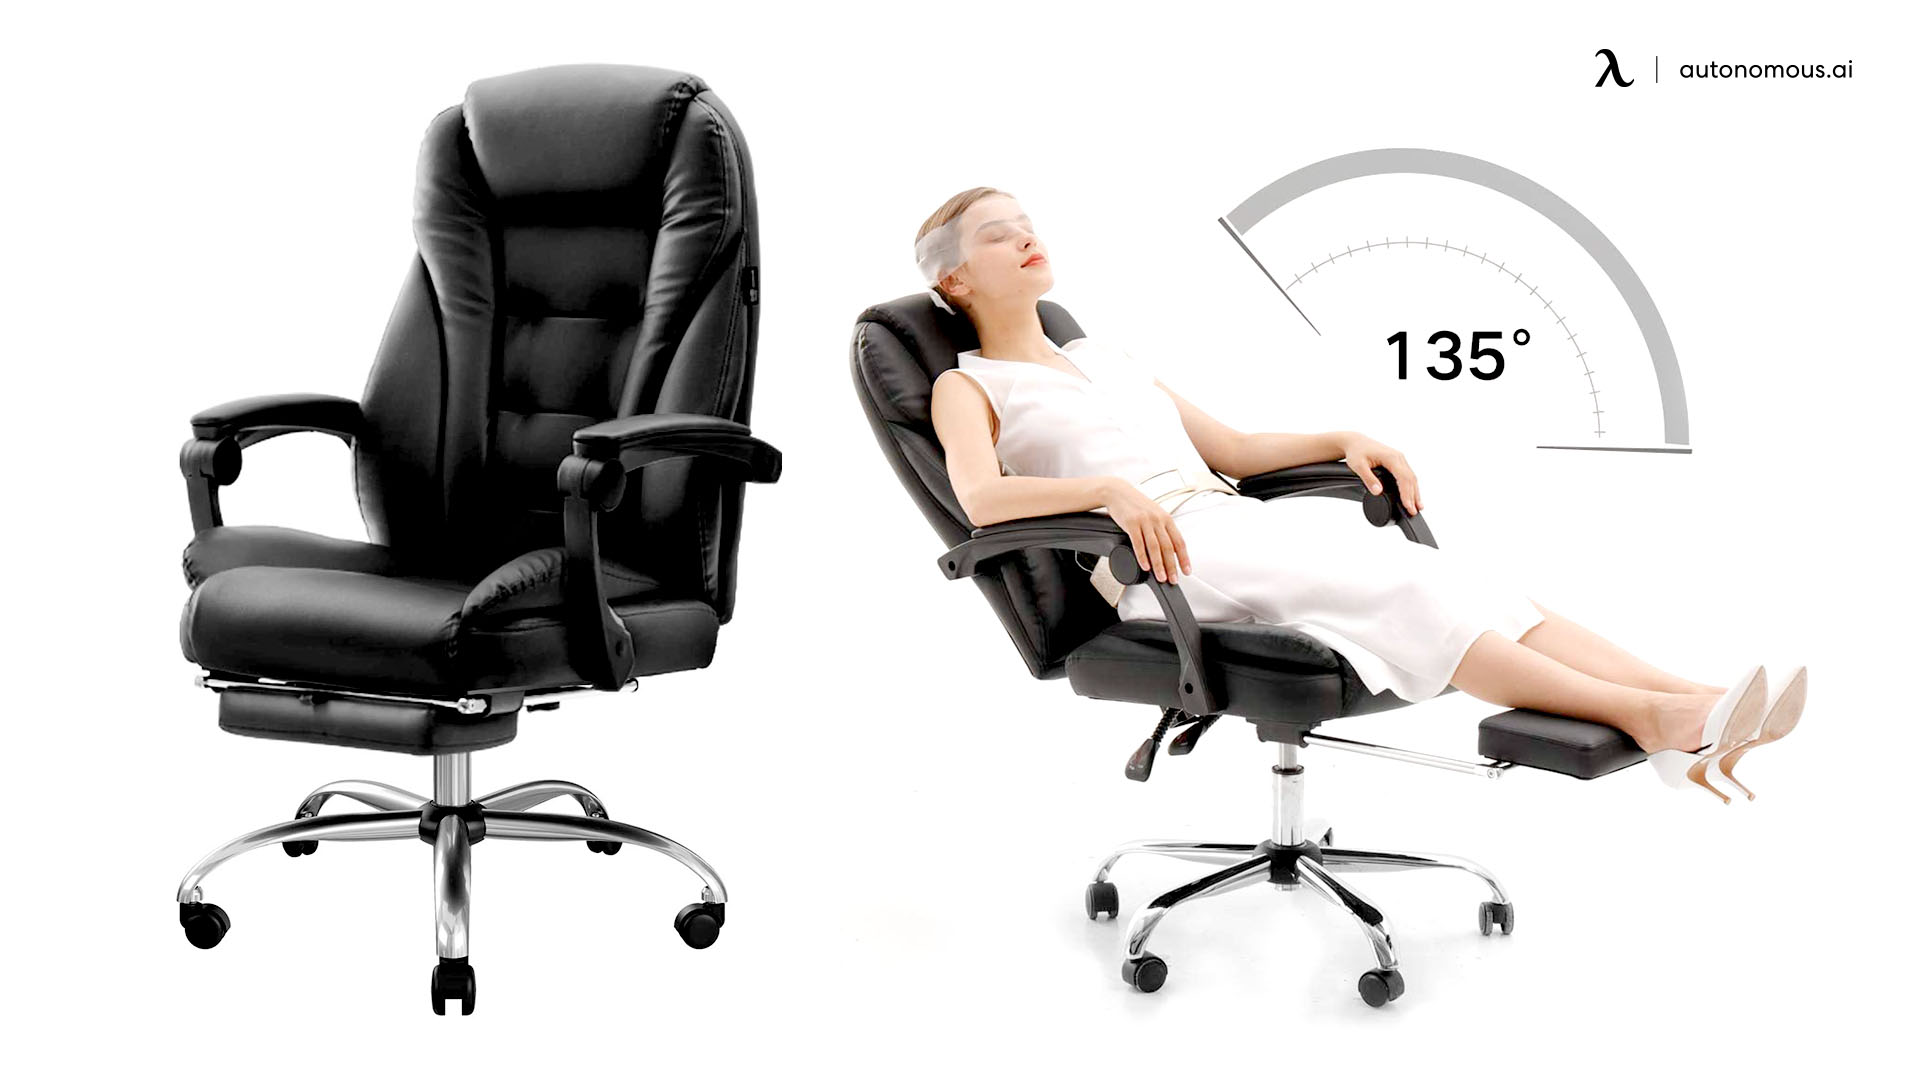 Hbada Ergonomic Executive Office Chair with Footrest